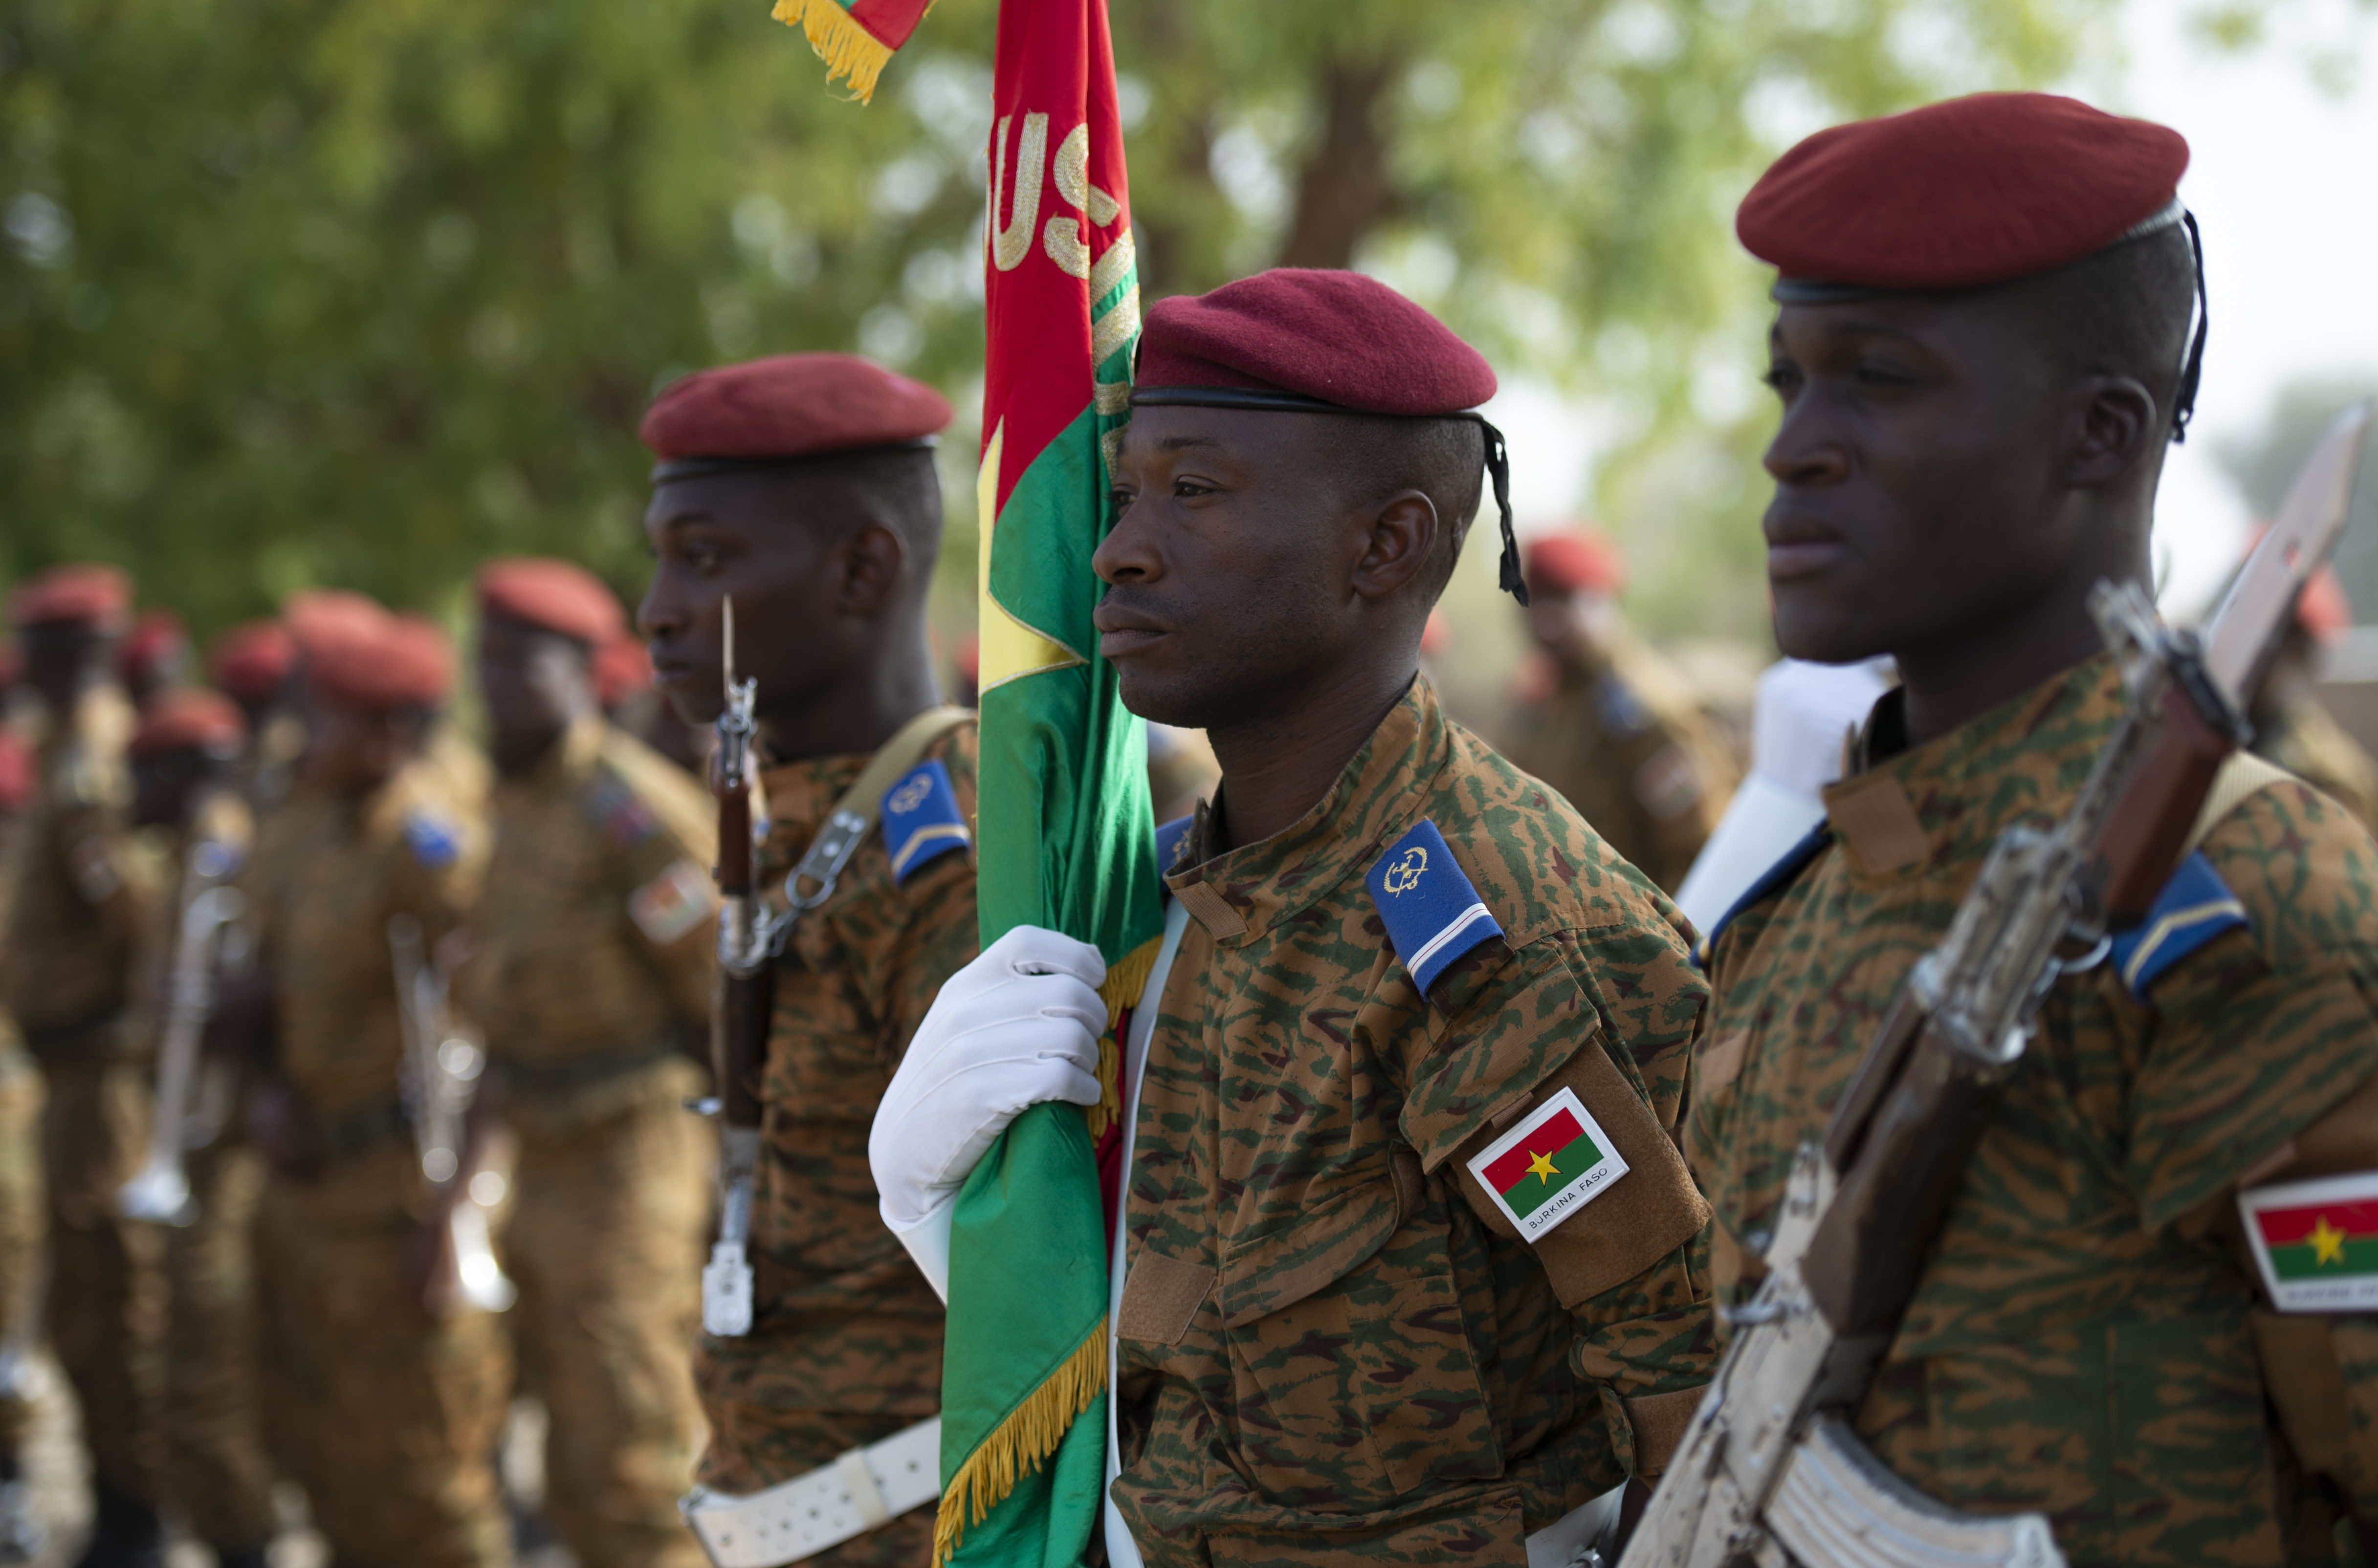 Members of the Burkinabe honor guard stand ready to be called to attention before the opening ceremony of Flintlock 2019, in Ouagadougou, Burkina Faso.  Flintlock is an annual African-led, integrated military and law enforcement exercise that has strengthened key partner nation forces throughout North and West Africa as well as western special operations forces since 2005. (U.S. Navy photo by MC2 (SW/AW) Evan Parker / released)